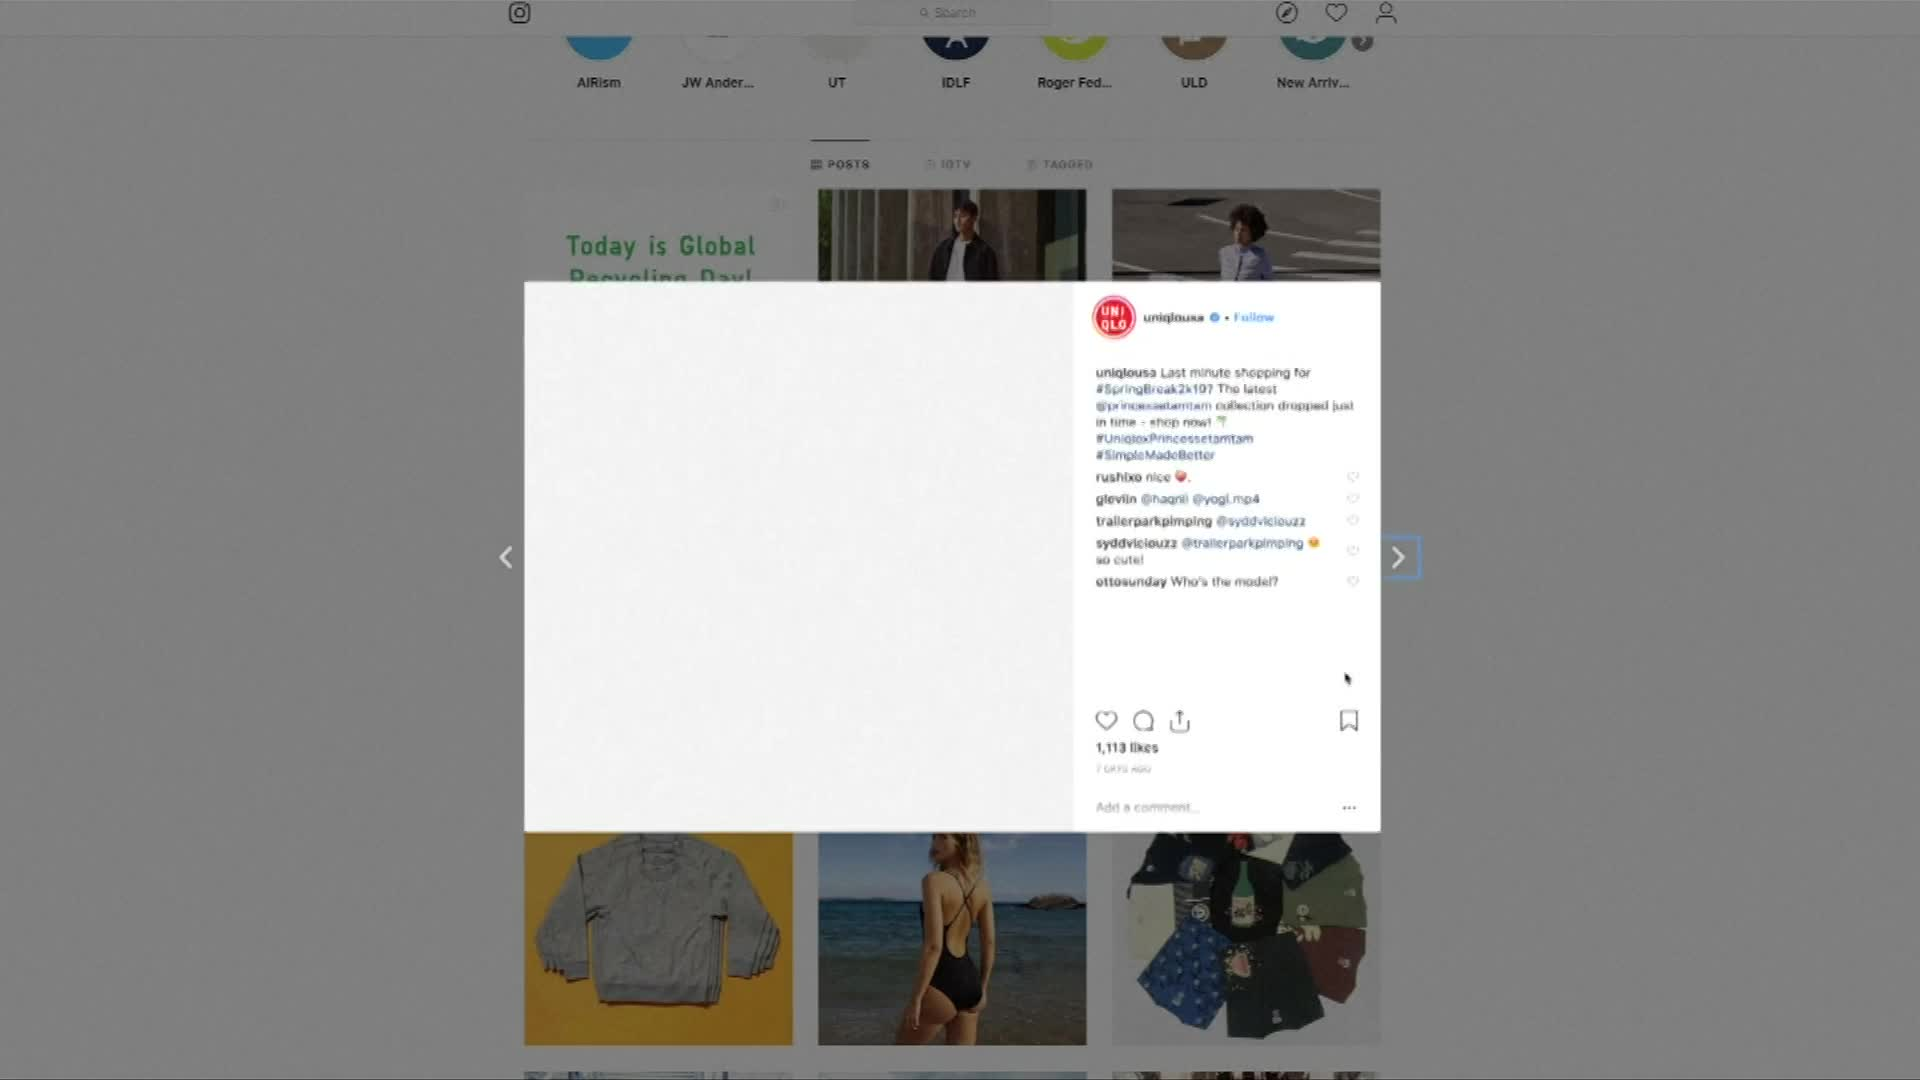 Instagram Checkout Is About To Make Your Shopping Habits Even Worse